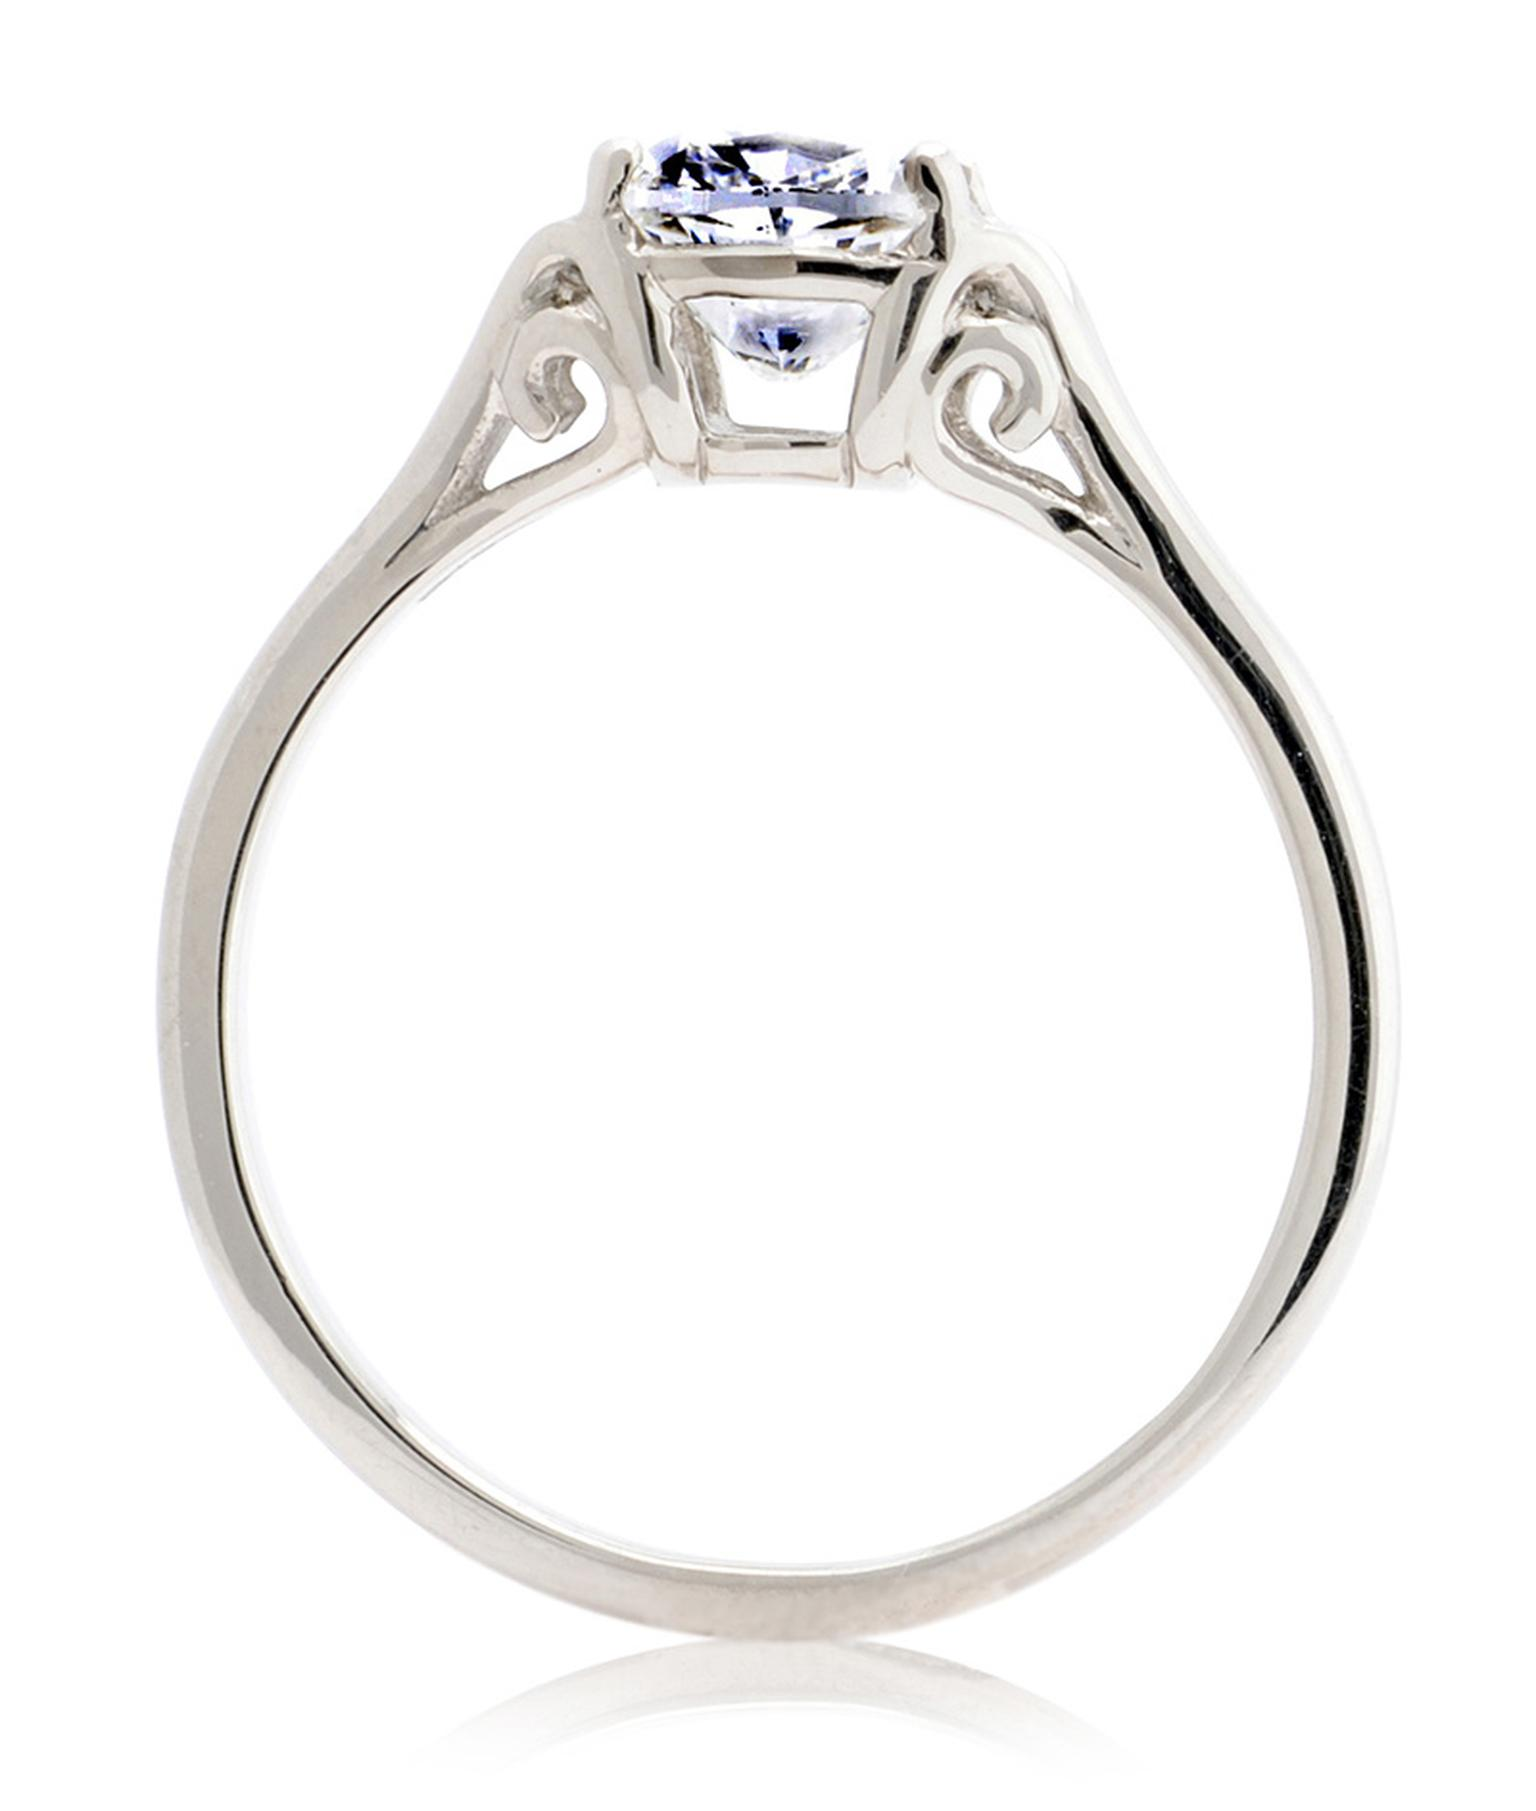 CRED Vintage cushion-cut diamond ring (from £6,450), available in Fairtrade white or yellow gold.